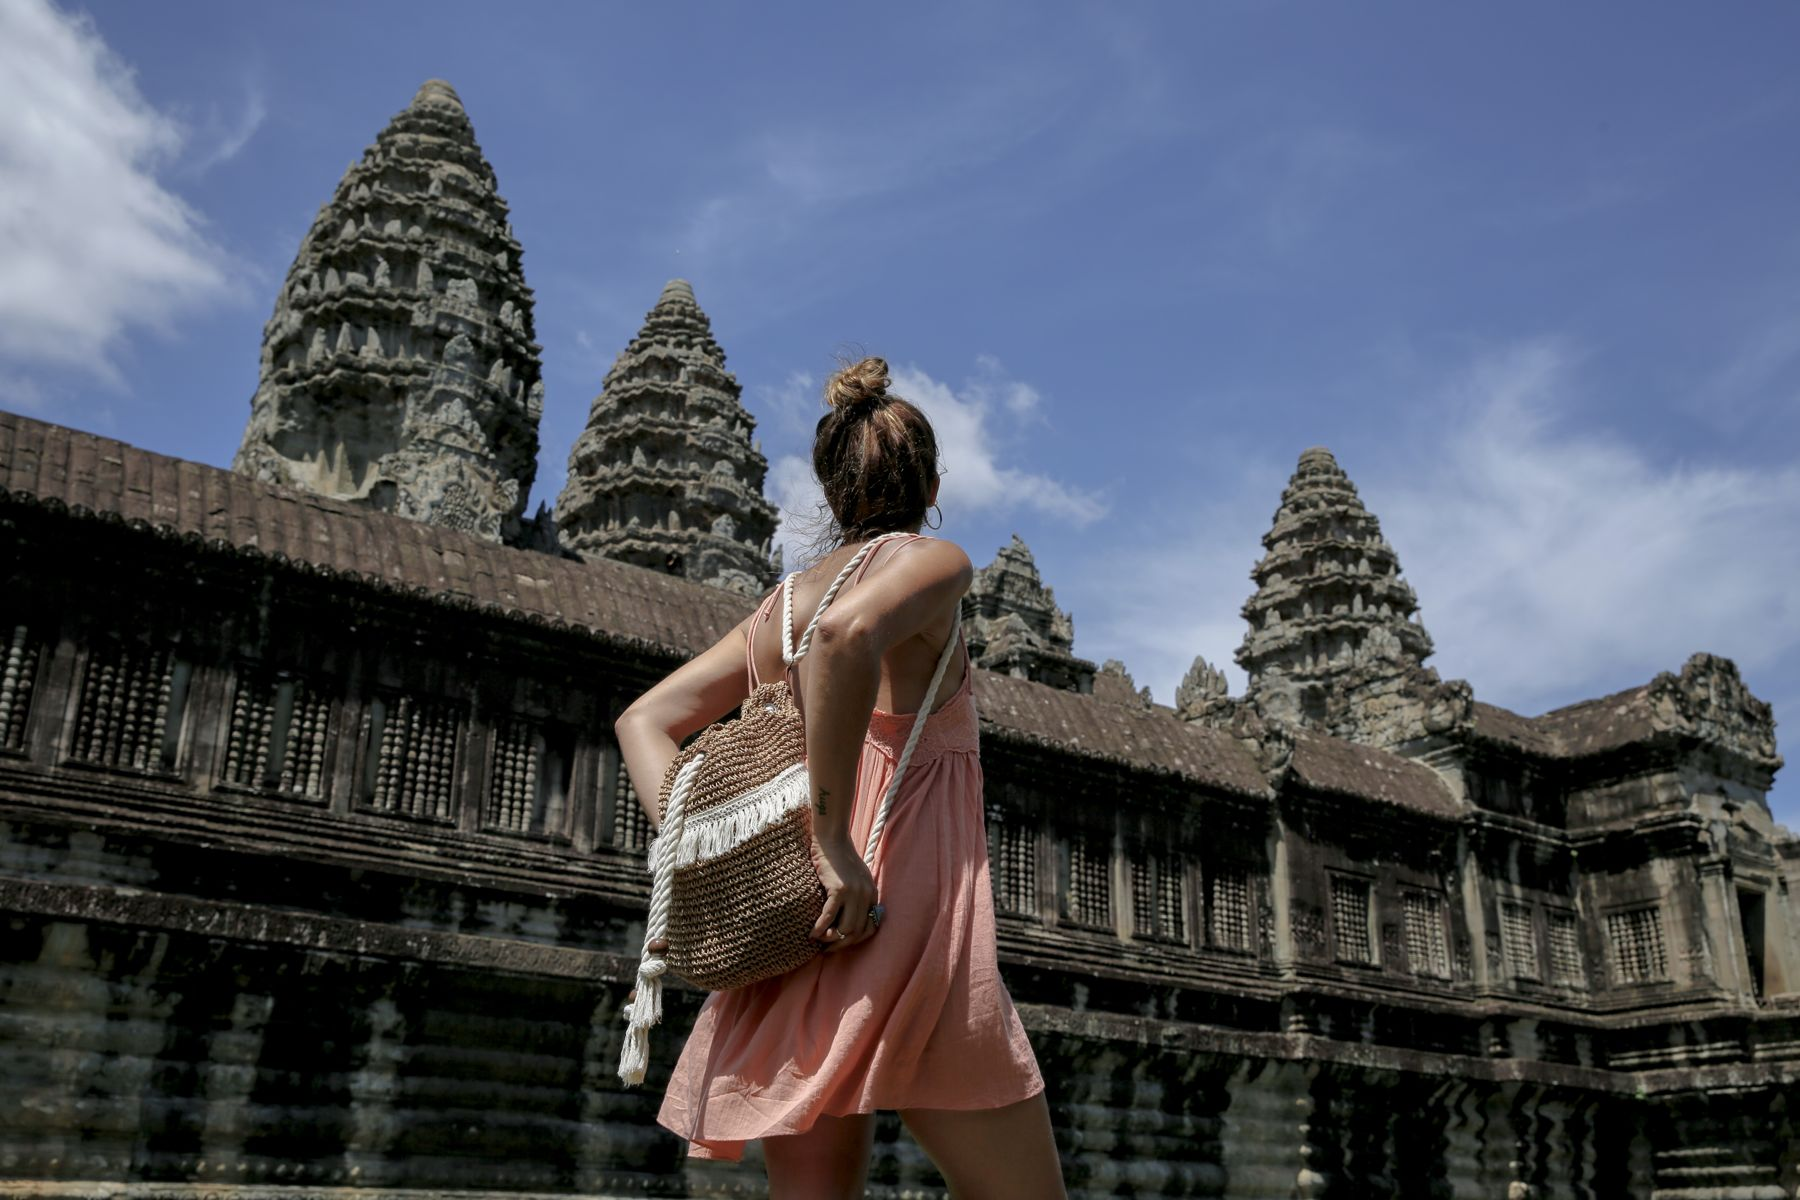 camboya cambodia angkor wat trendy taste summer trip outfit look dress sneakers stan smith vestido zapatillas asos adidas _7